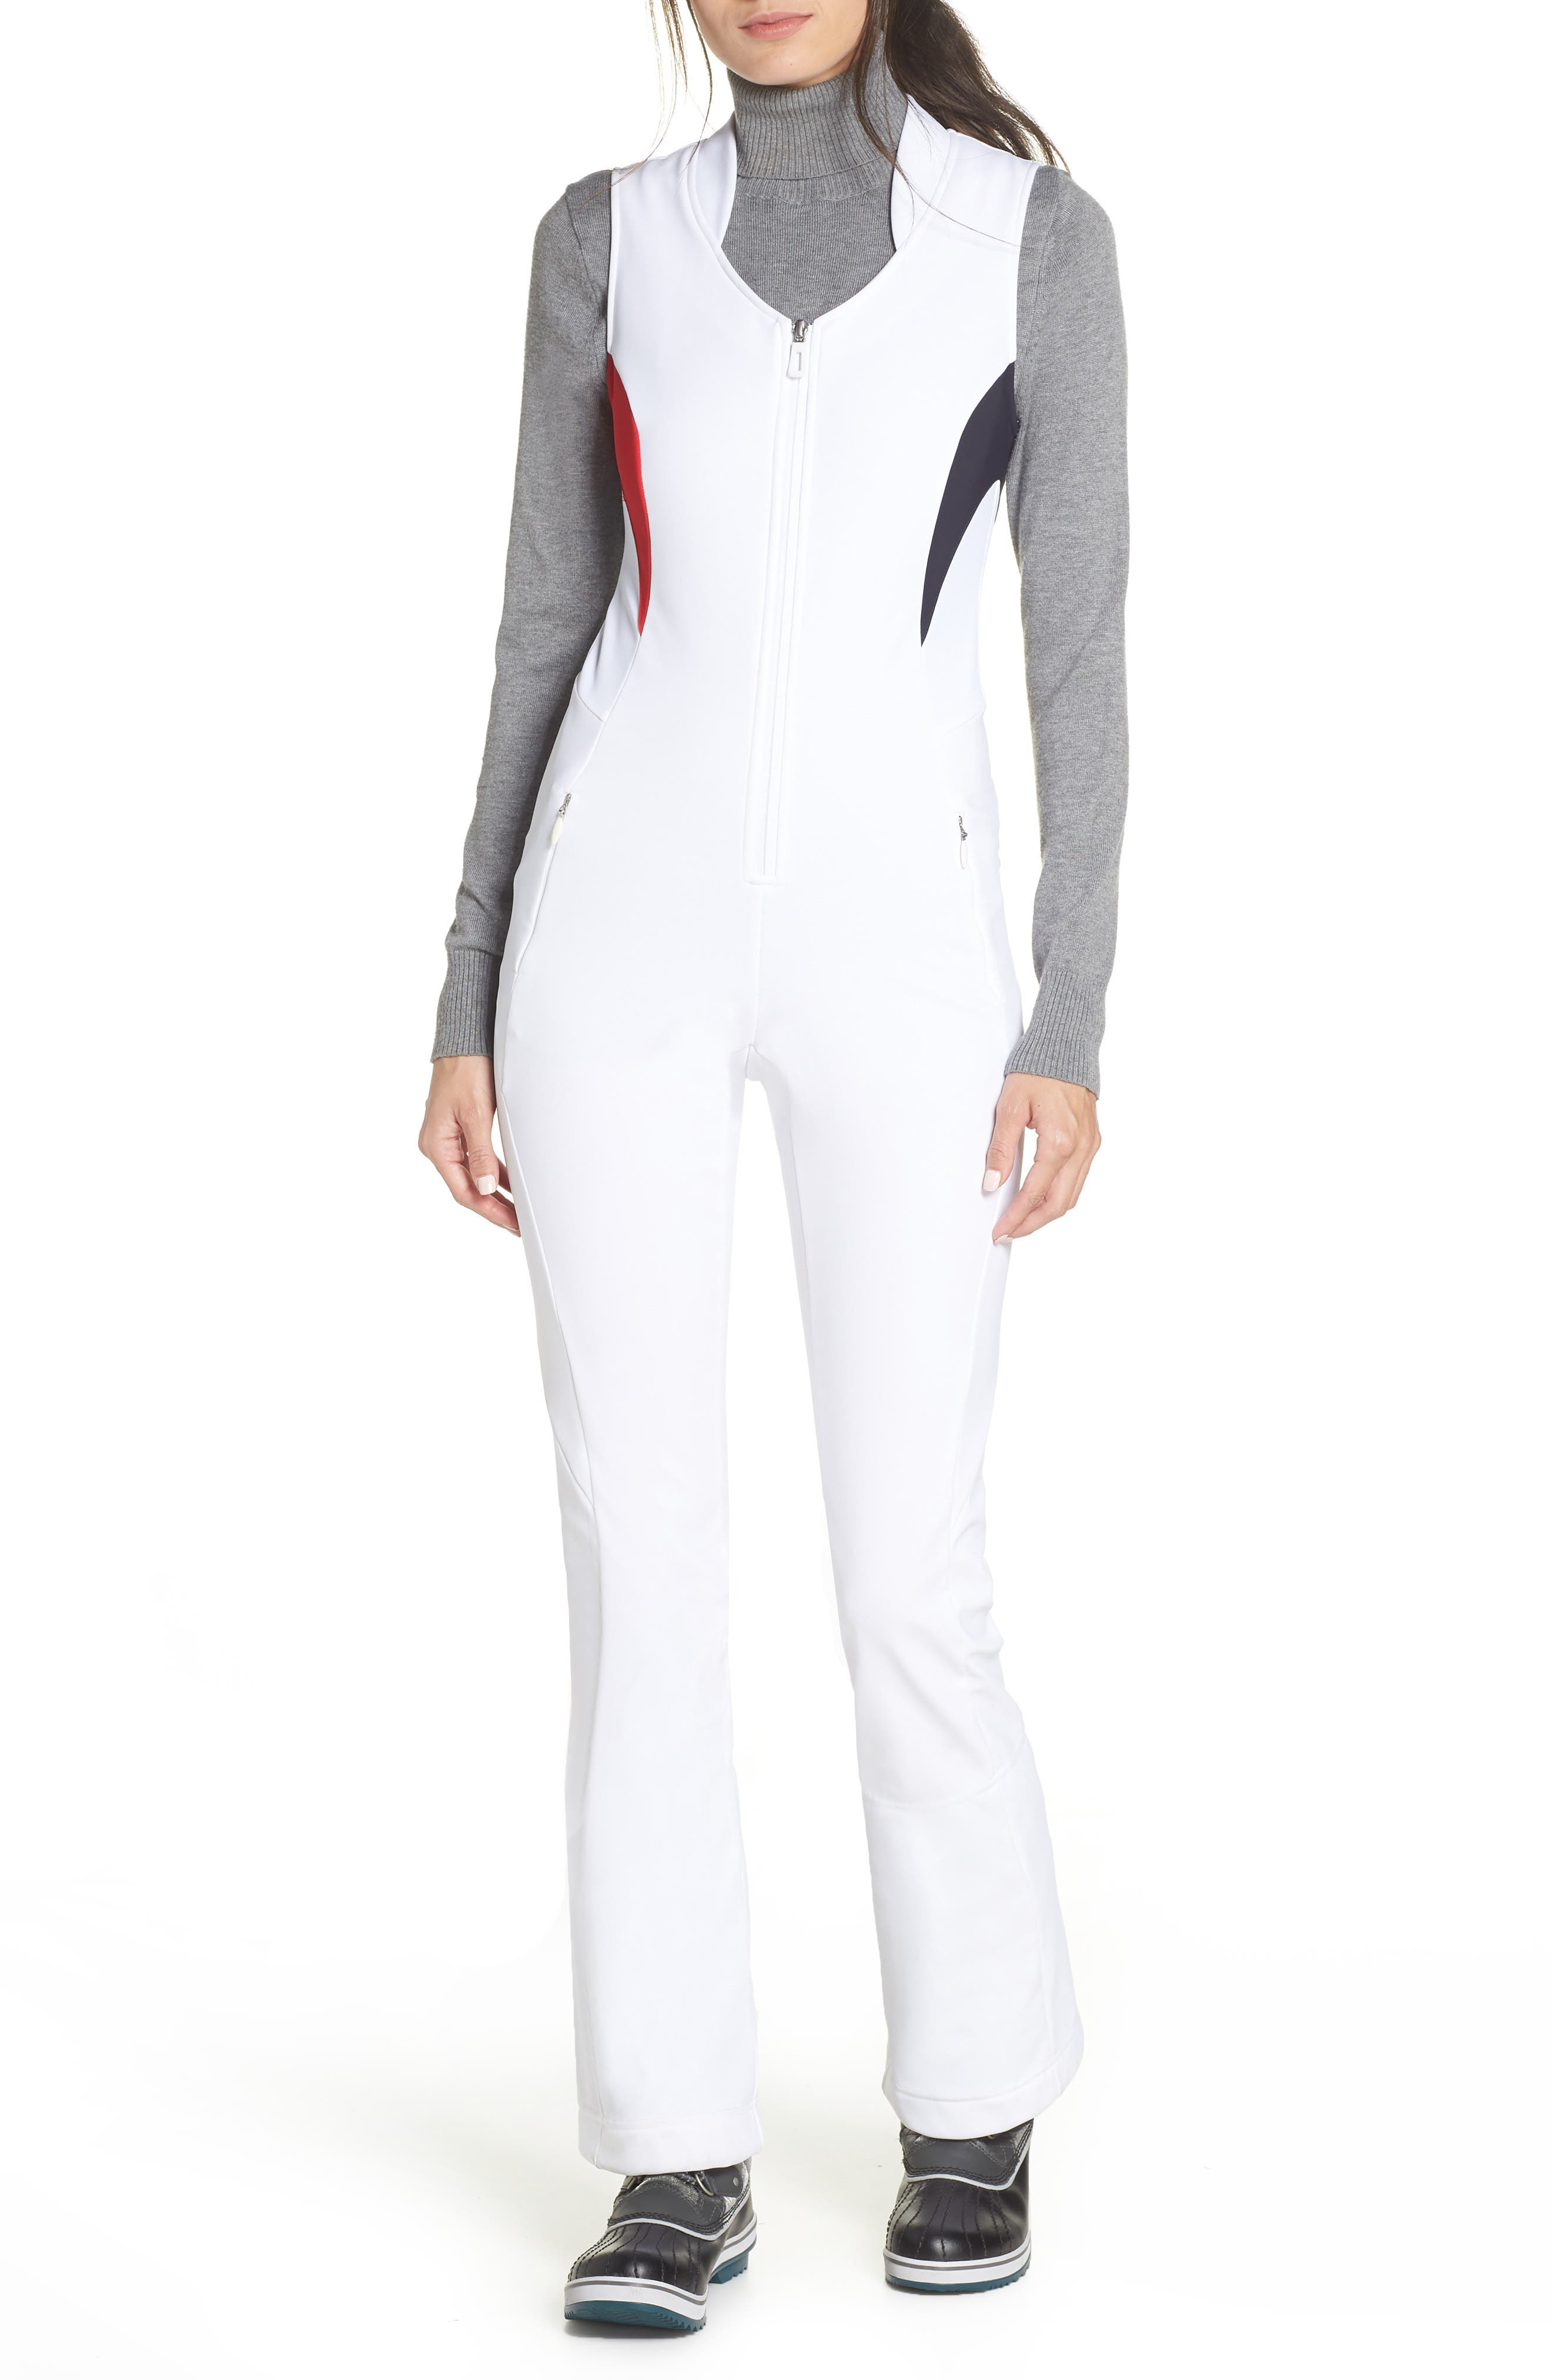 LVL XIII Ellipsis Front Zip One-Piece in 100 - White